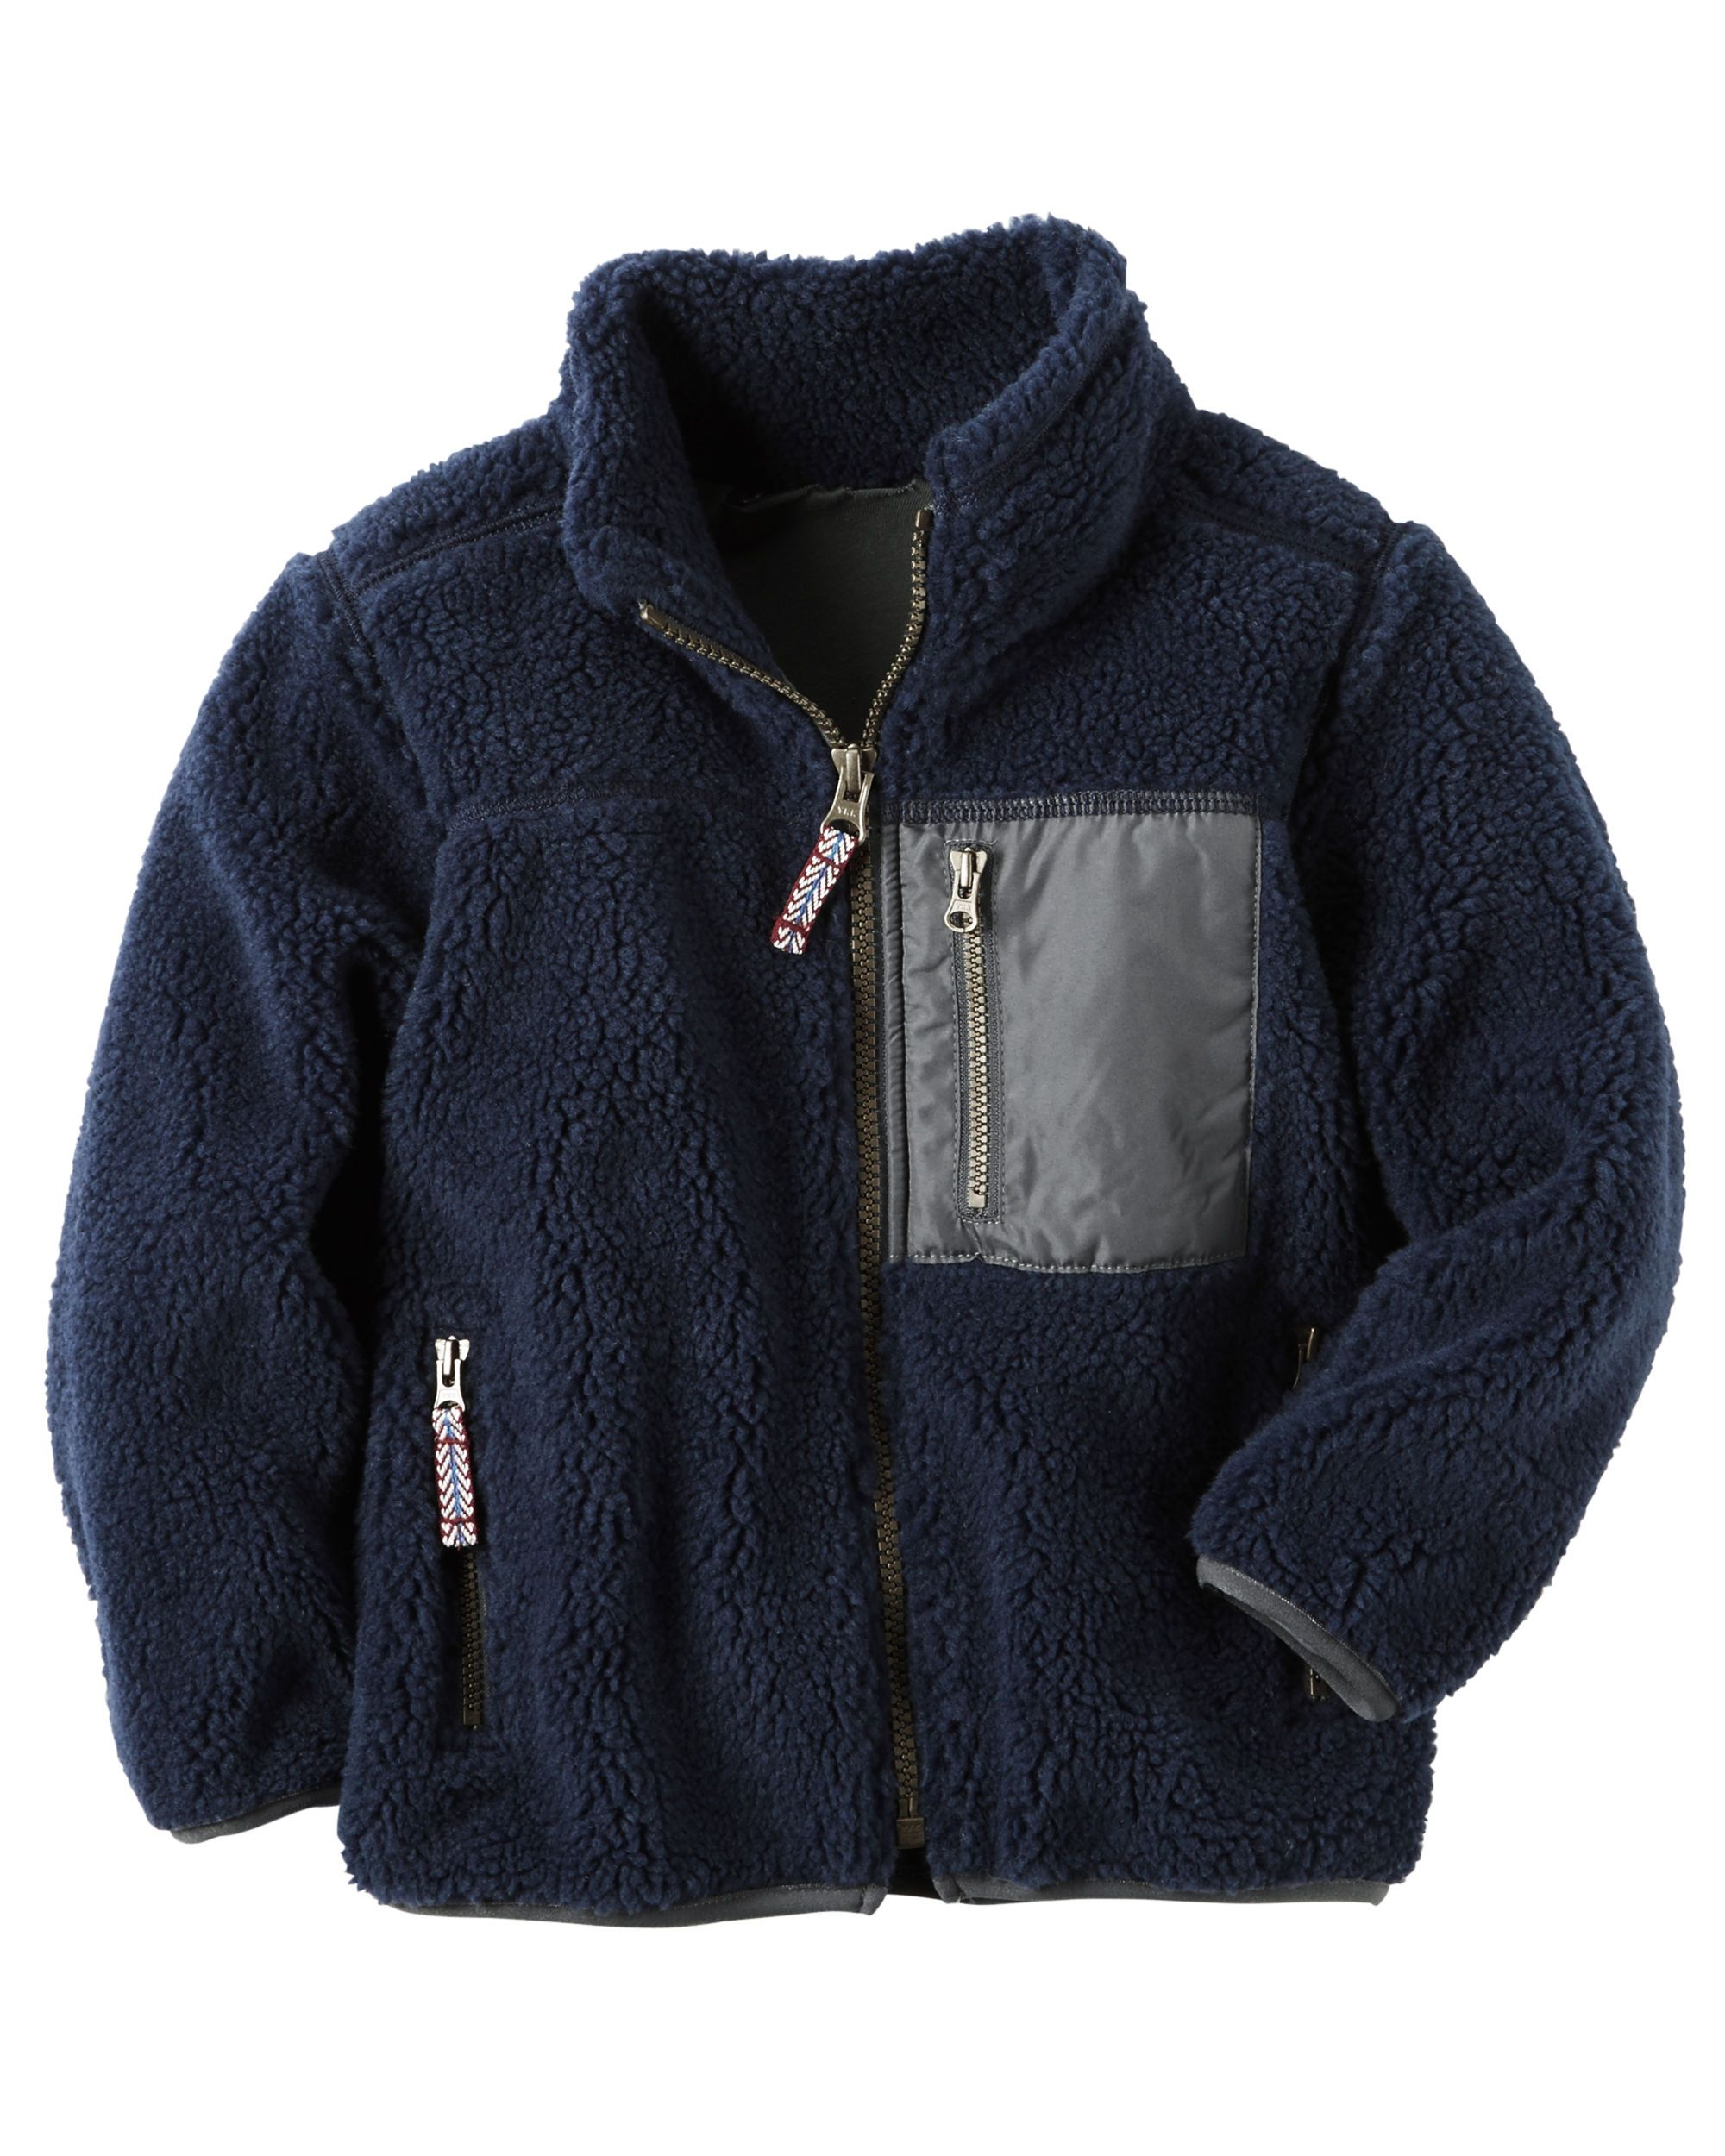 Quarter-Zip B'gosh Fleece Cozies | Babies, Baby boy and Boys